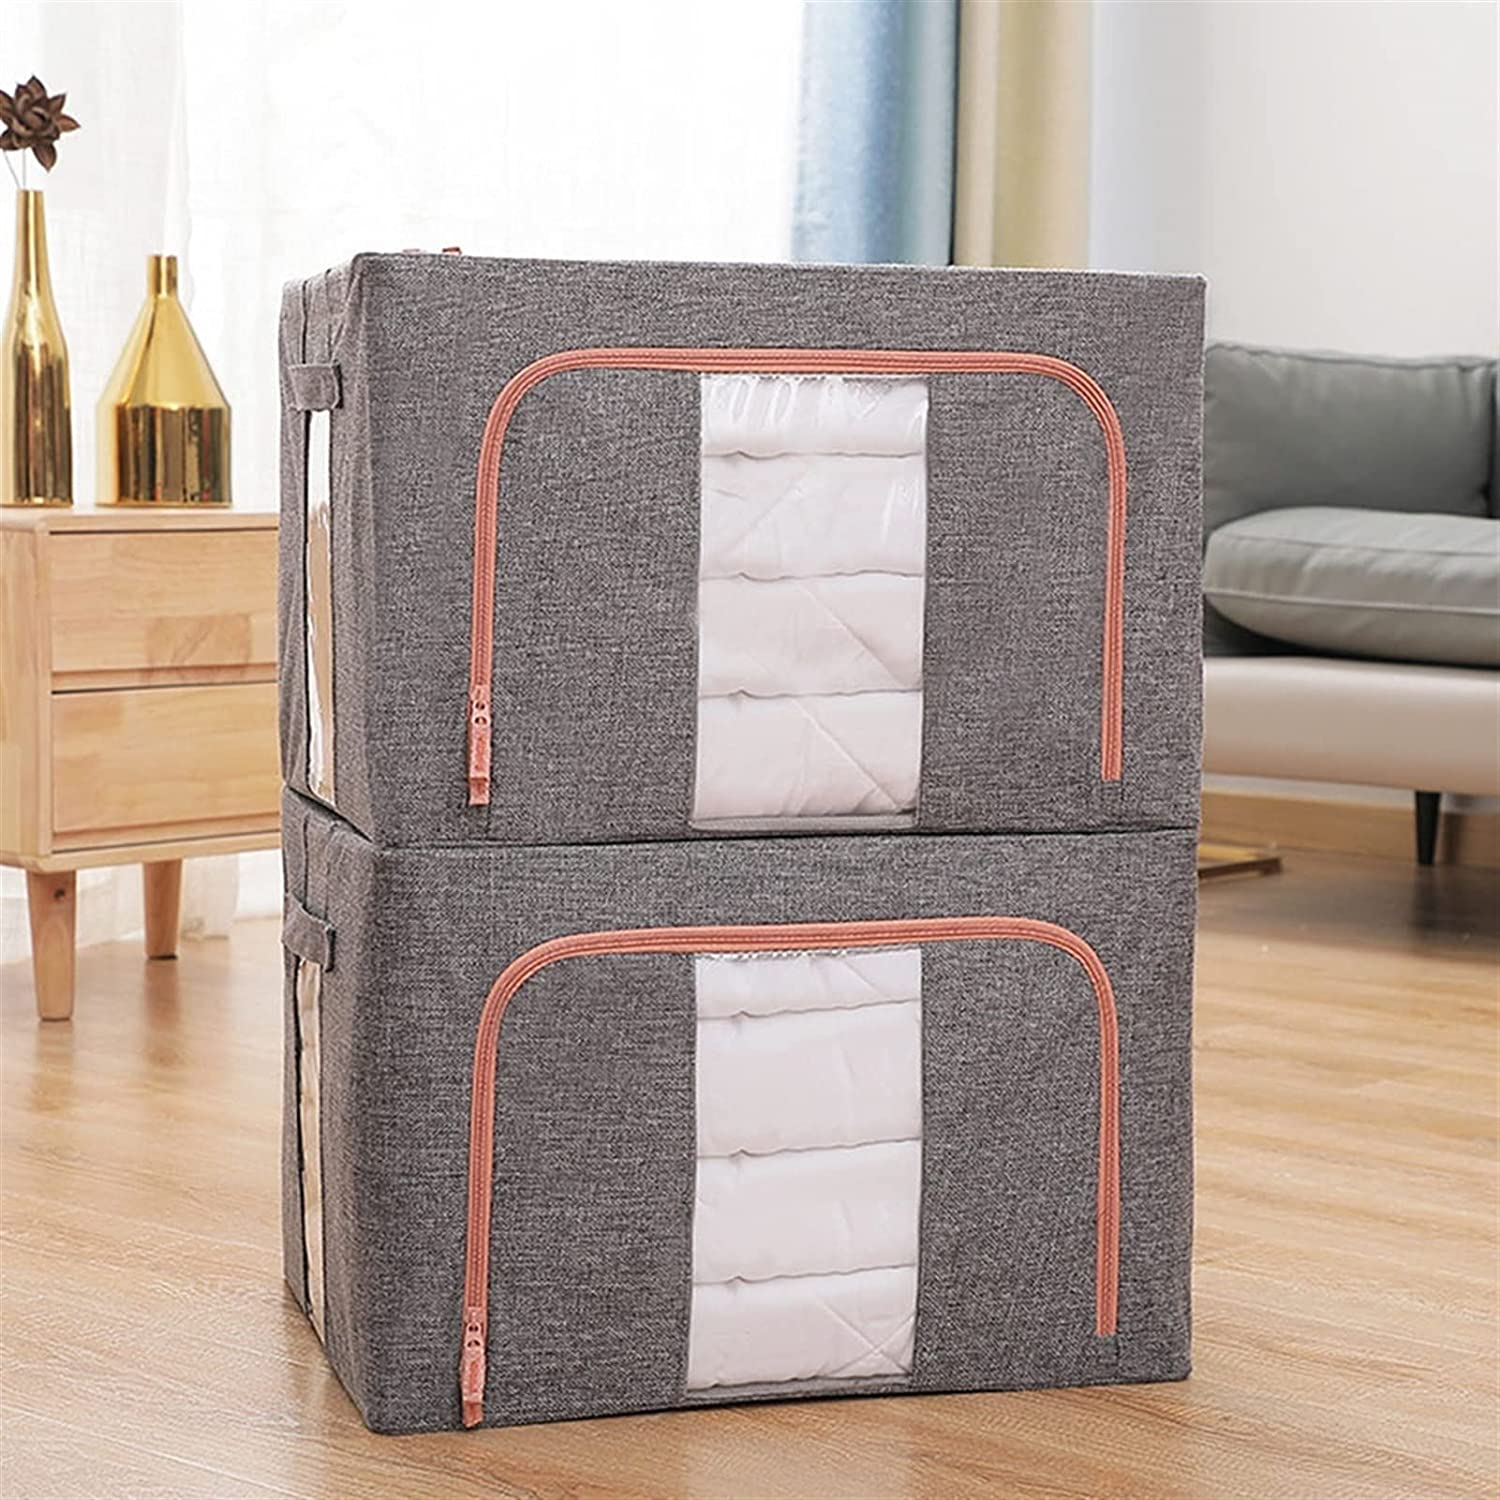 DaFei Ranking TOP11 New product! New type Large Foldable Clothing Storage 2PCS St Bags 100L Clothes